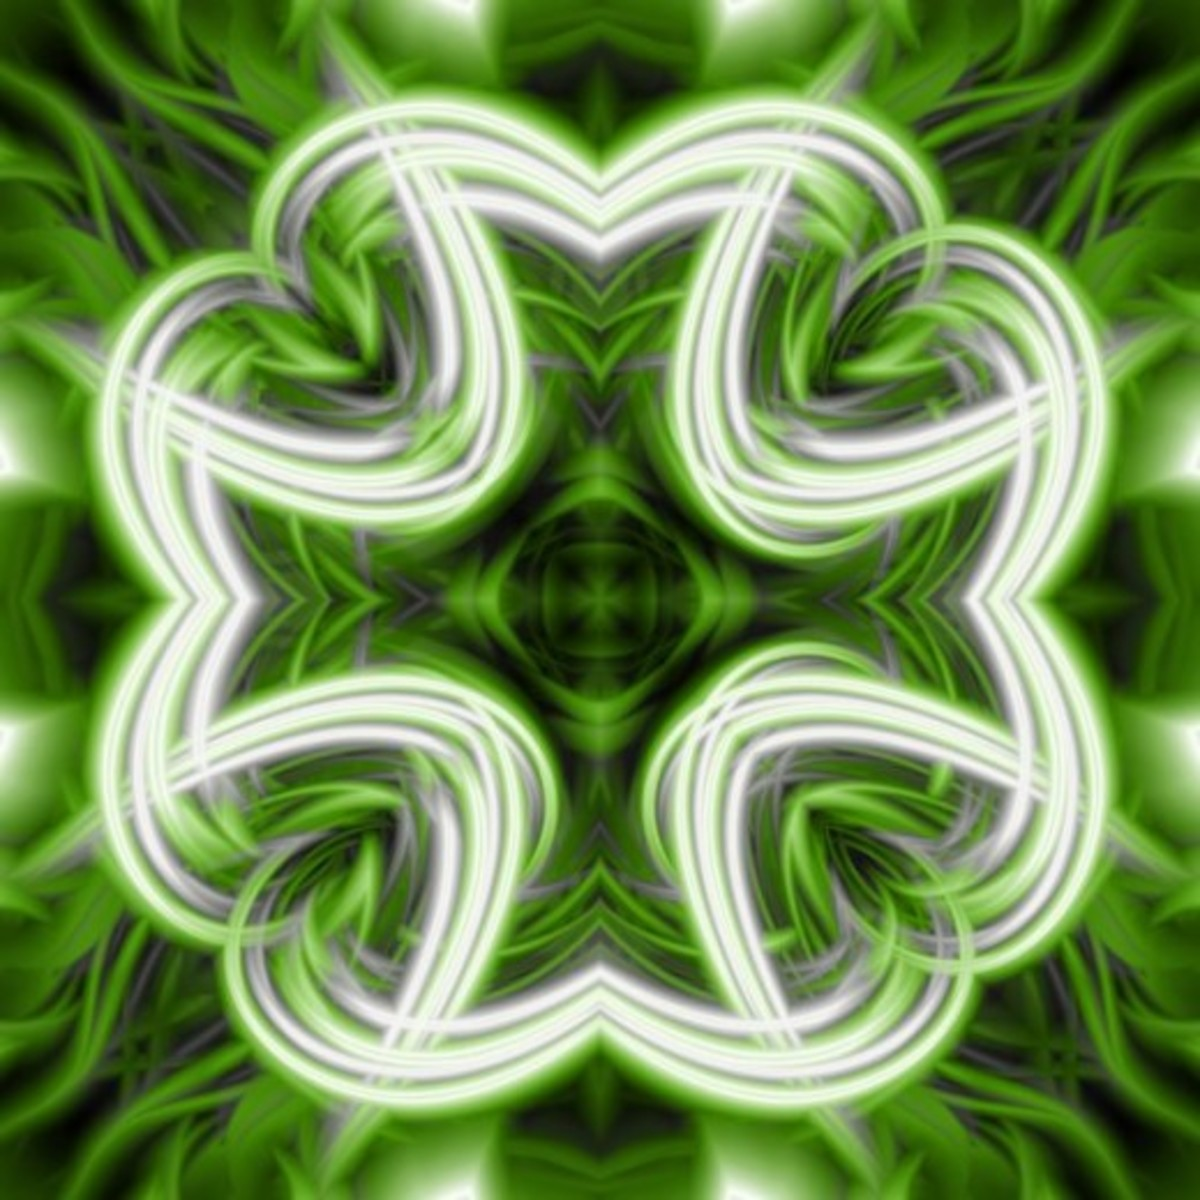 Abstract Four-Leaf Clover